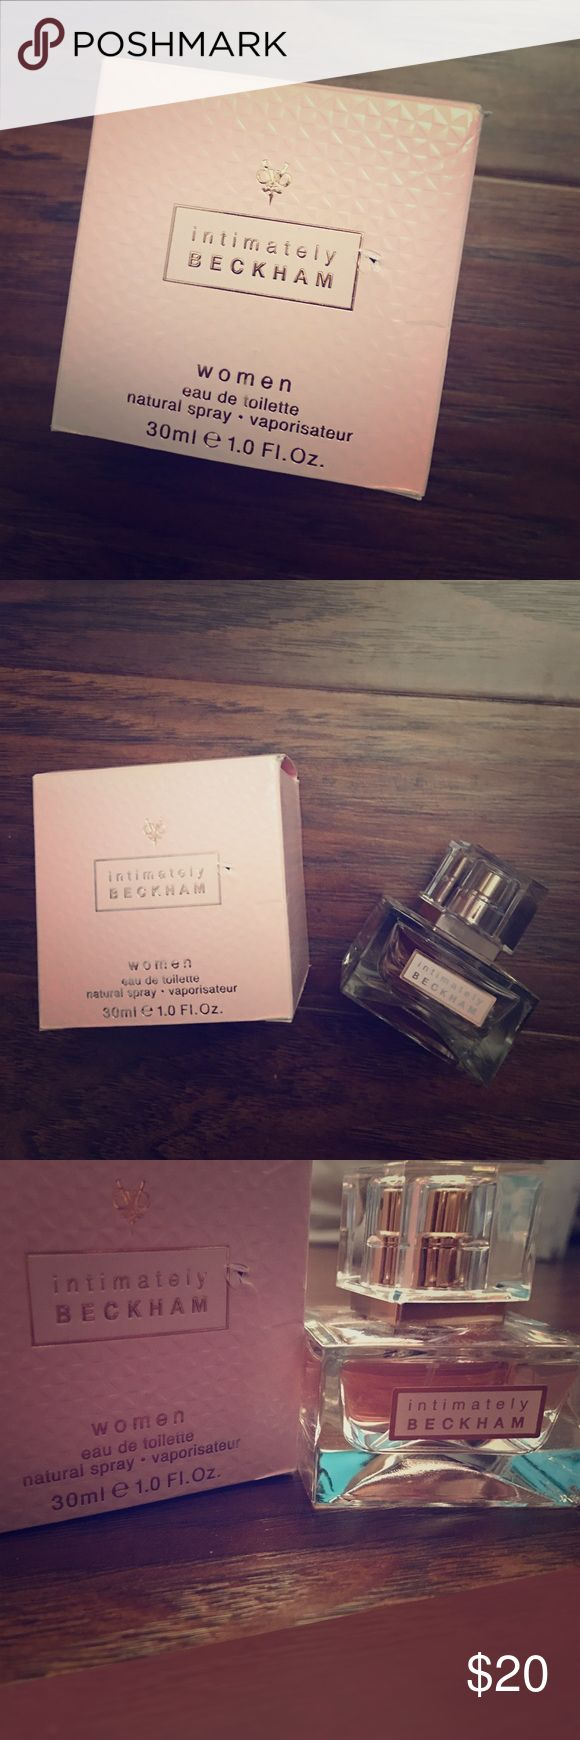 """Victoria Beckham - Perfume """"intimately"""" brand new in box! 30ml, 1.0 fl oz. LMK if you have any questions. Thanks!😊😘 Victoria Beckham Other"""